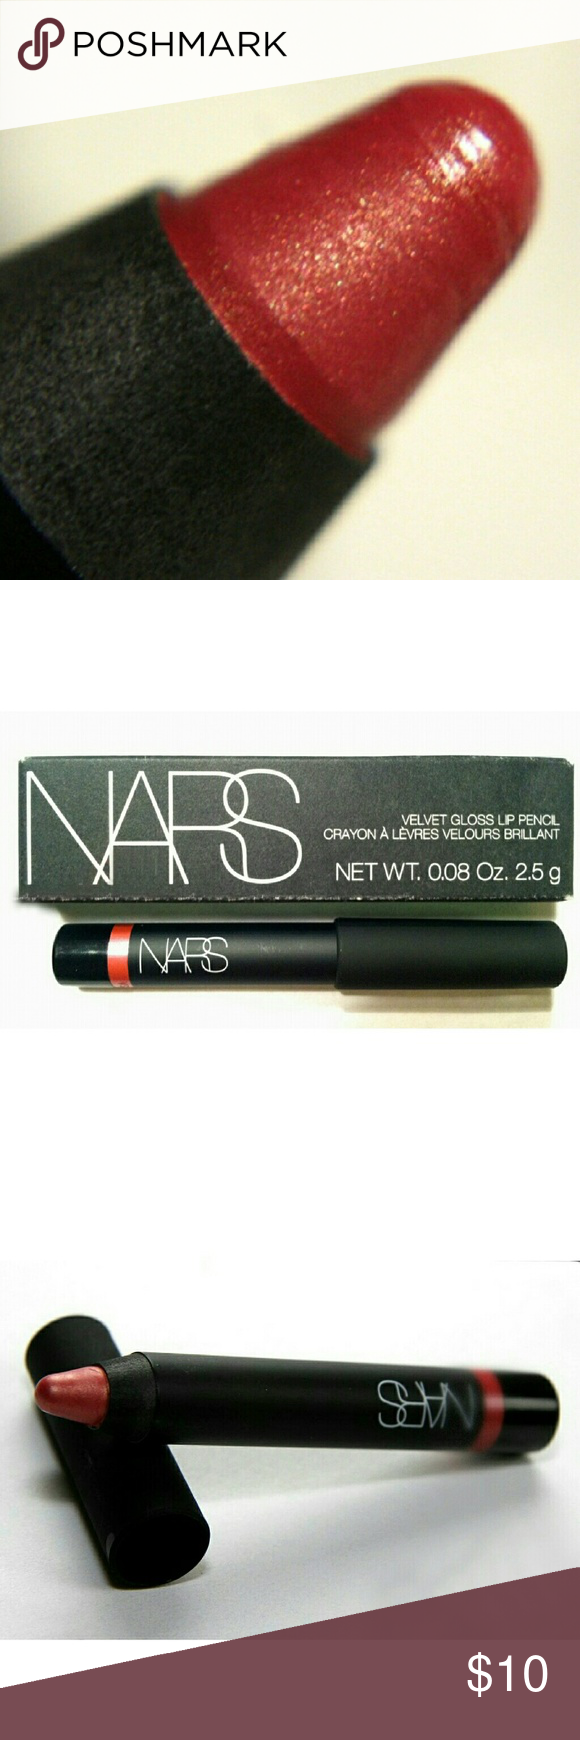 NARS Mini Velvet Gloss Lip Pencil in New Lover - Bright strawberymry shade with gold shimmer - Designed to give buildable coverage and moisturize - Travel size, 2.5 mg / 0.09 oz - Brand New in Box NARS Makeup Lipstick